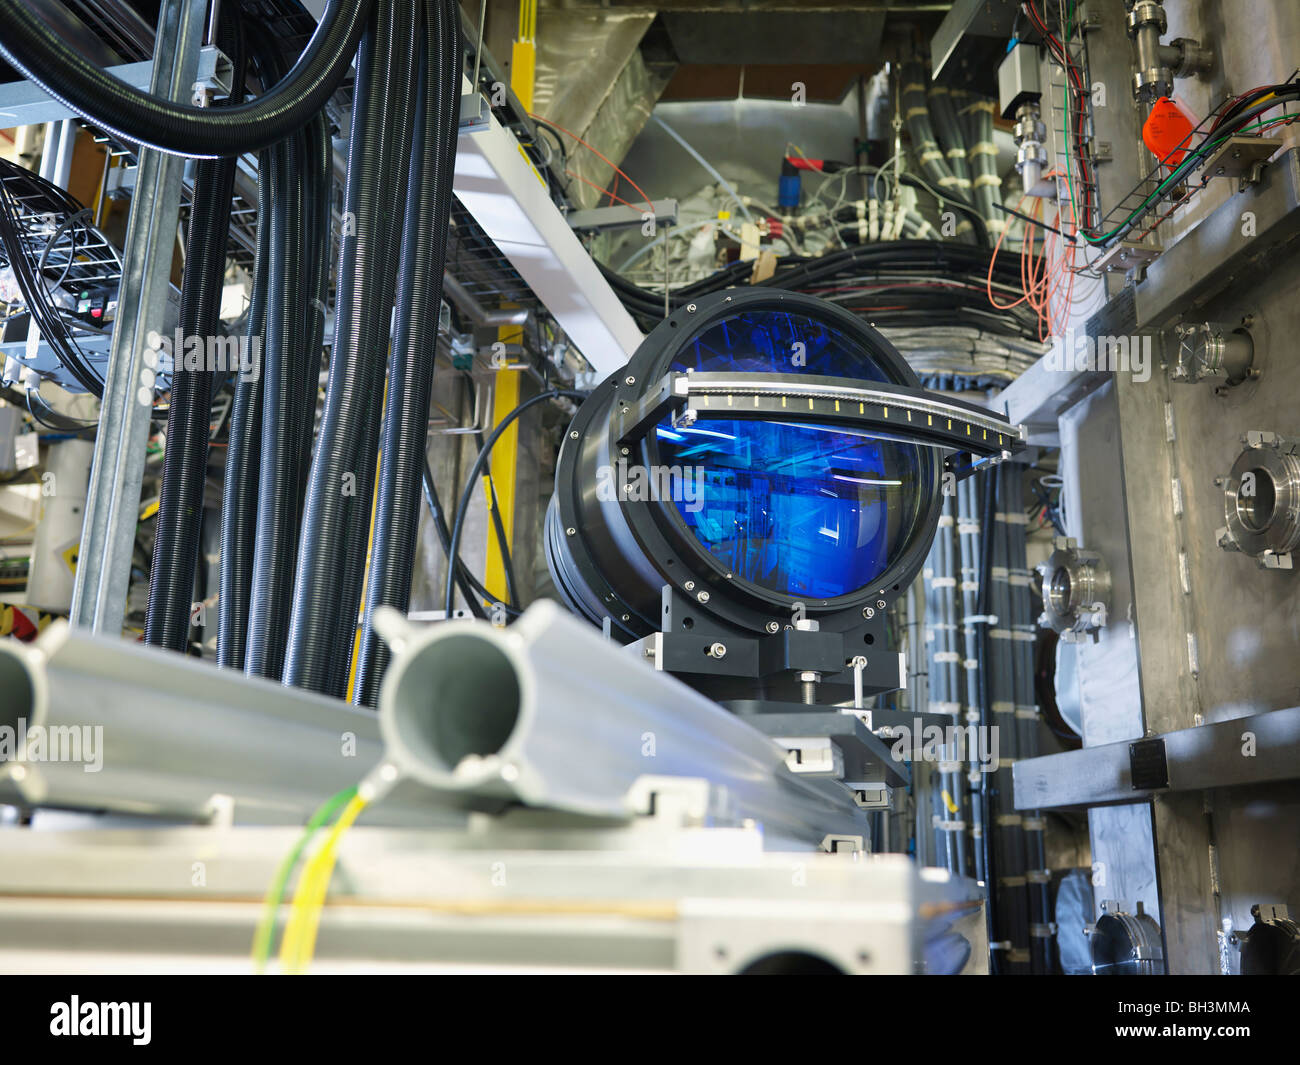 Large Lens In Fusion Reactor - Stock Image